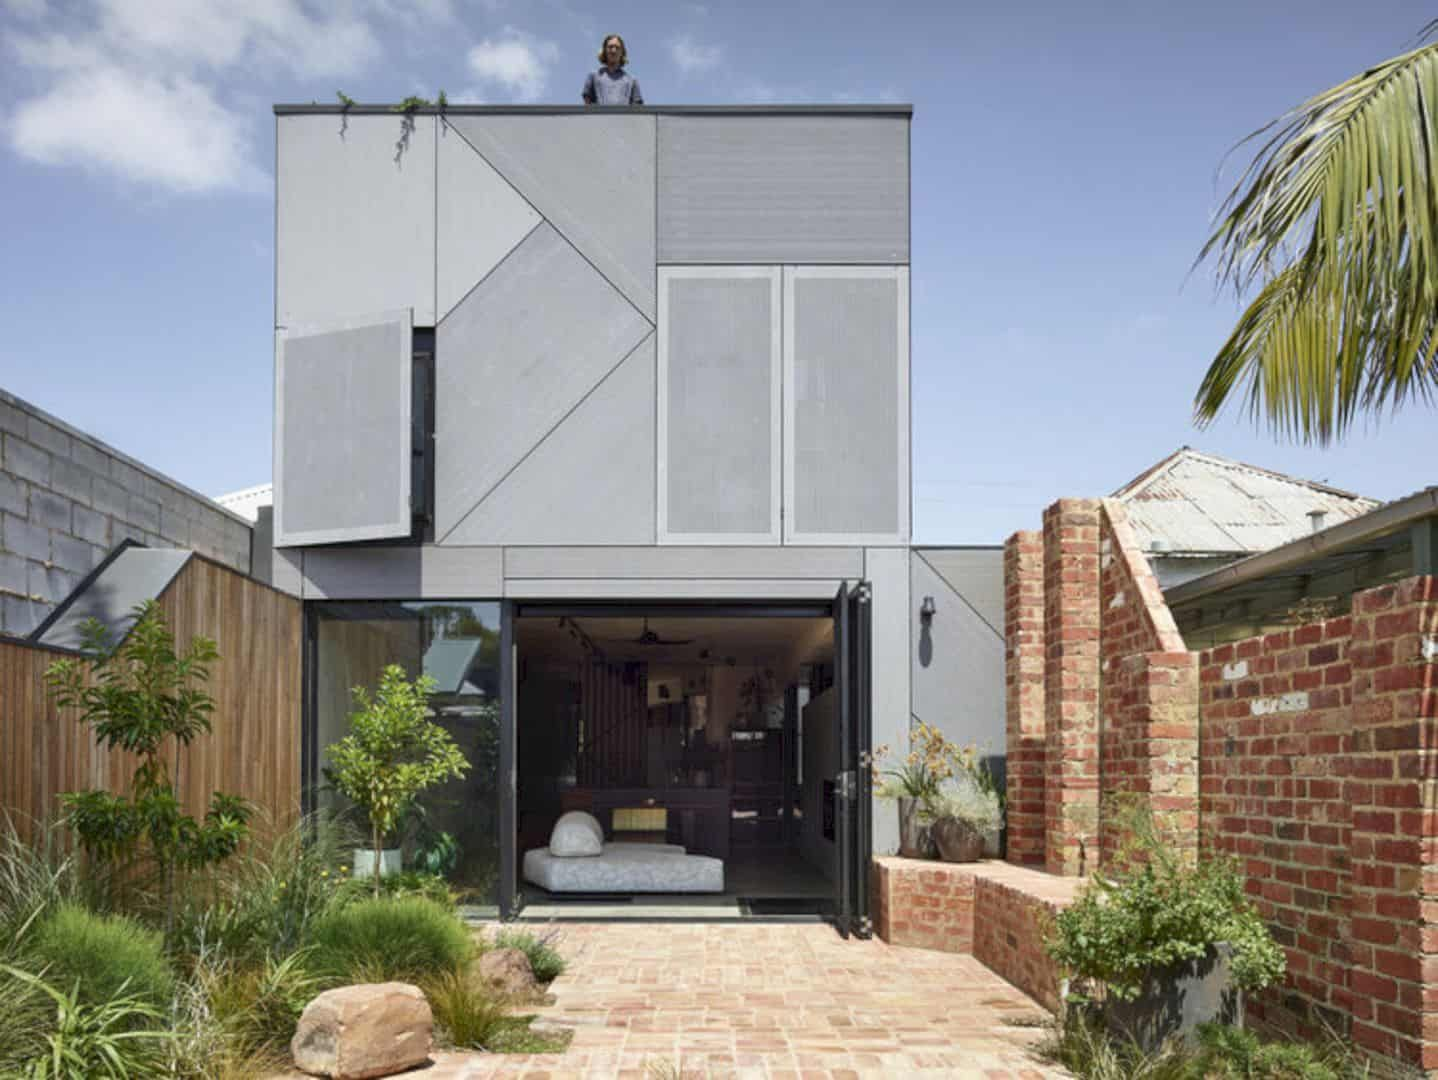 Union House A Fun Multi Level Home With Dramatic And Playful Features And Thoughtful Design In 2020 Architect Architecture Level Homes